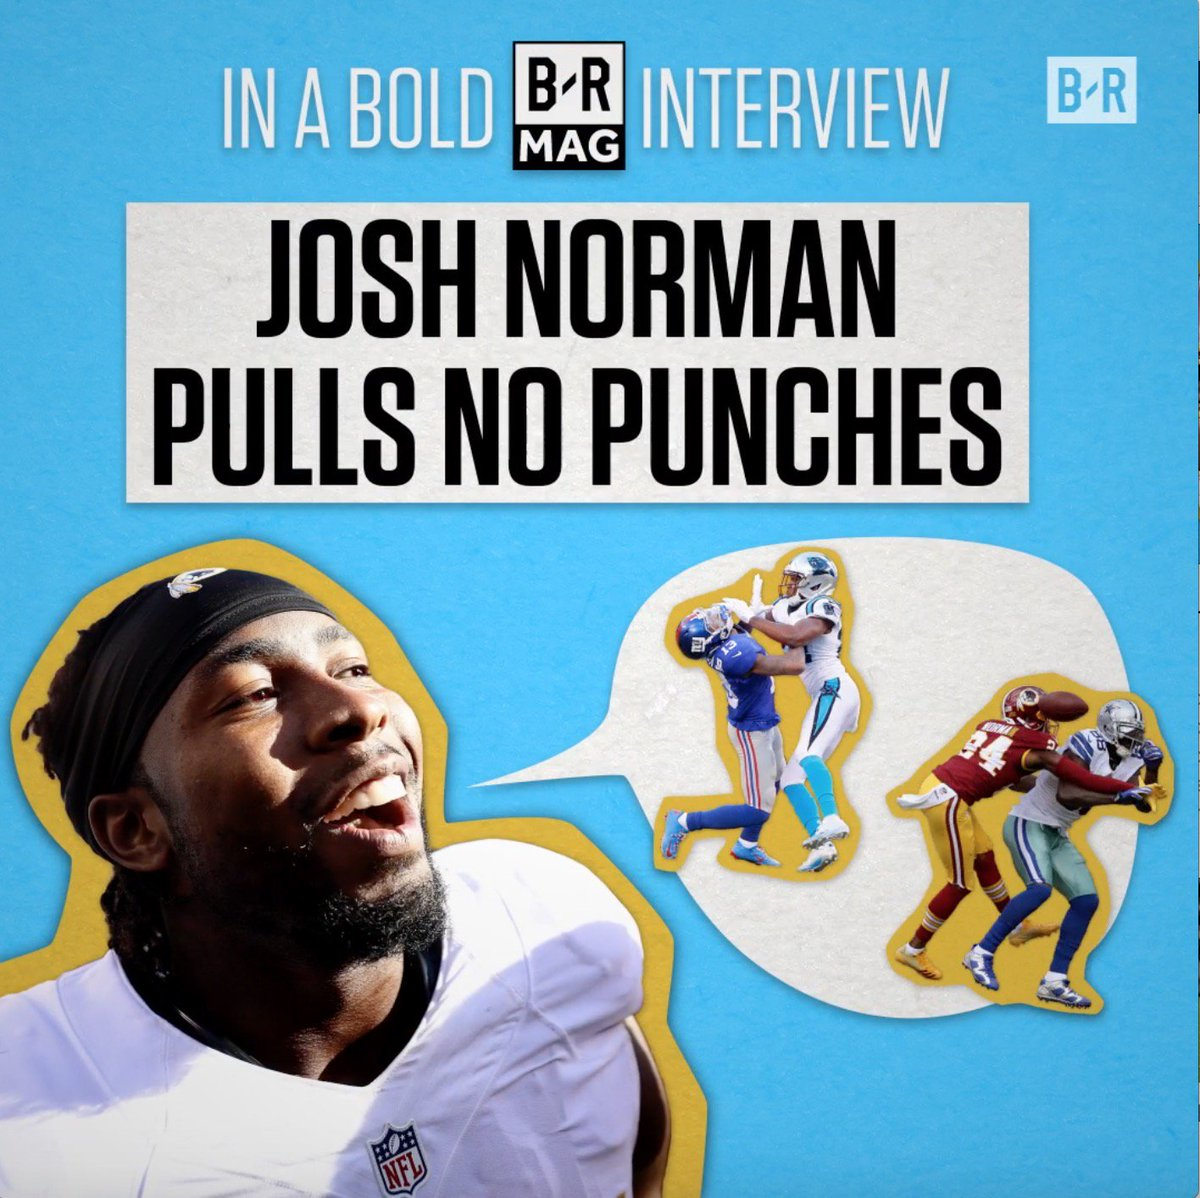 Josh Norman gets real about facing OBJ and Dez #BRmag➡️